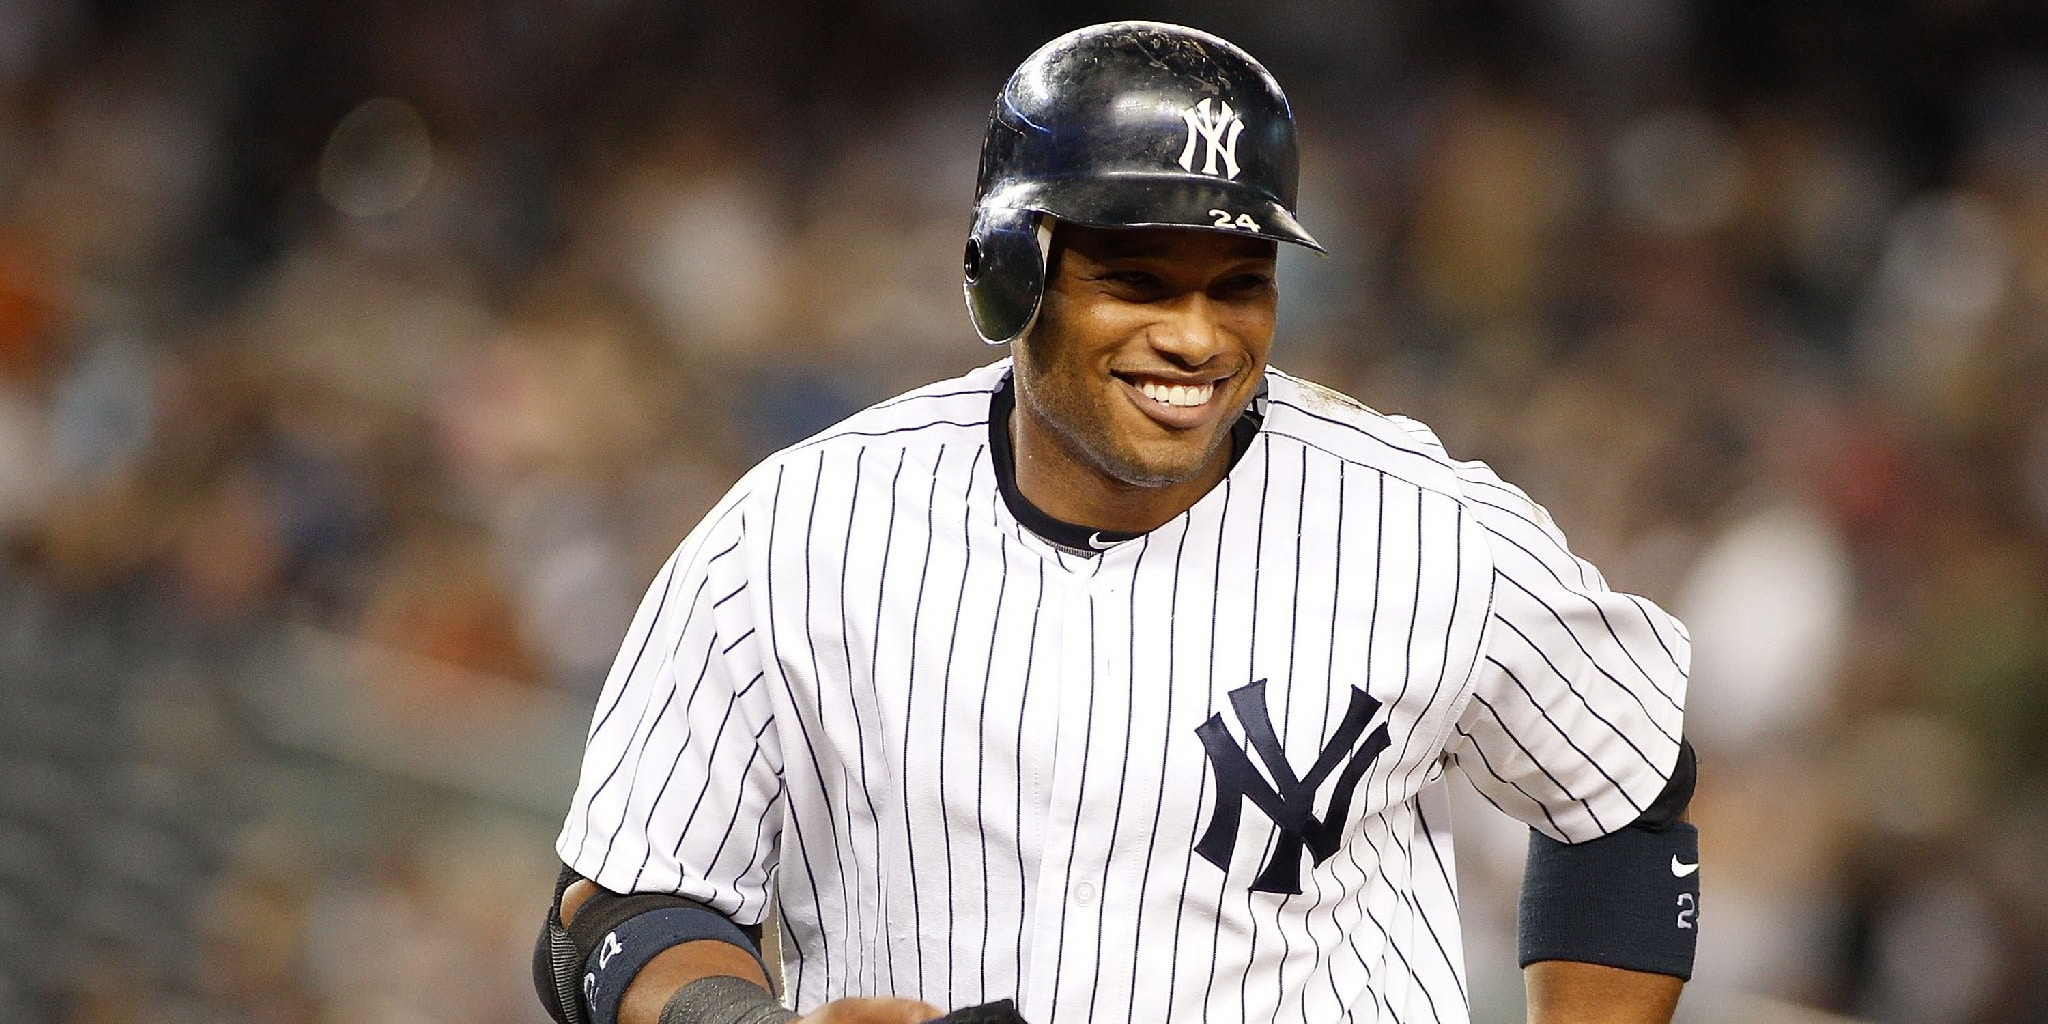 Robinson Cano Net Worth, Salary, Income & Assets in 2018